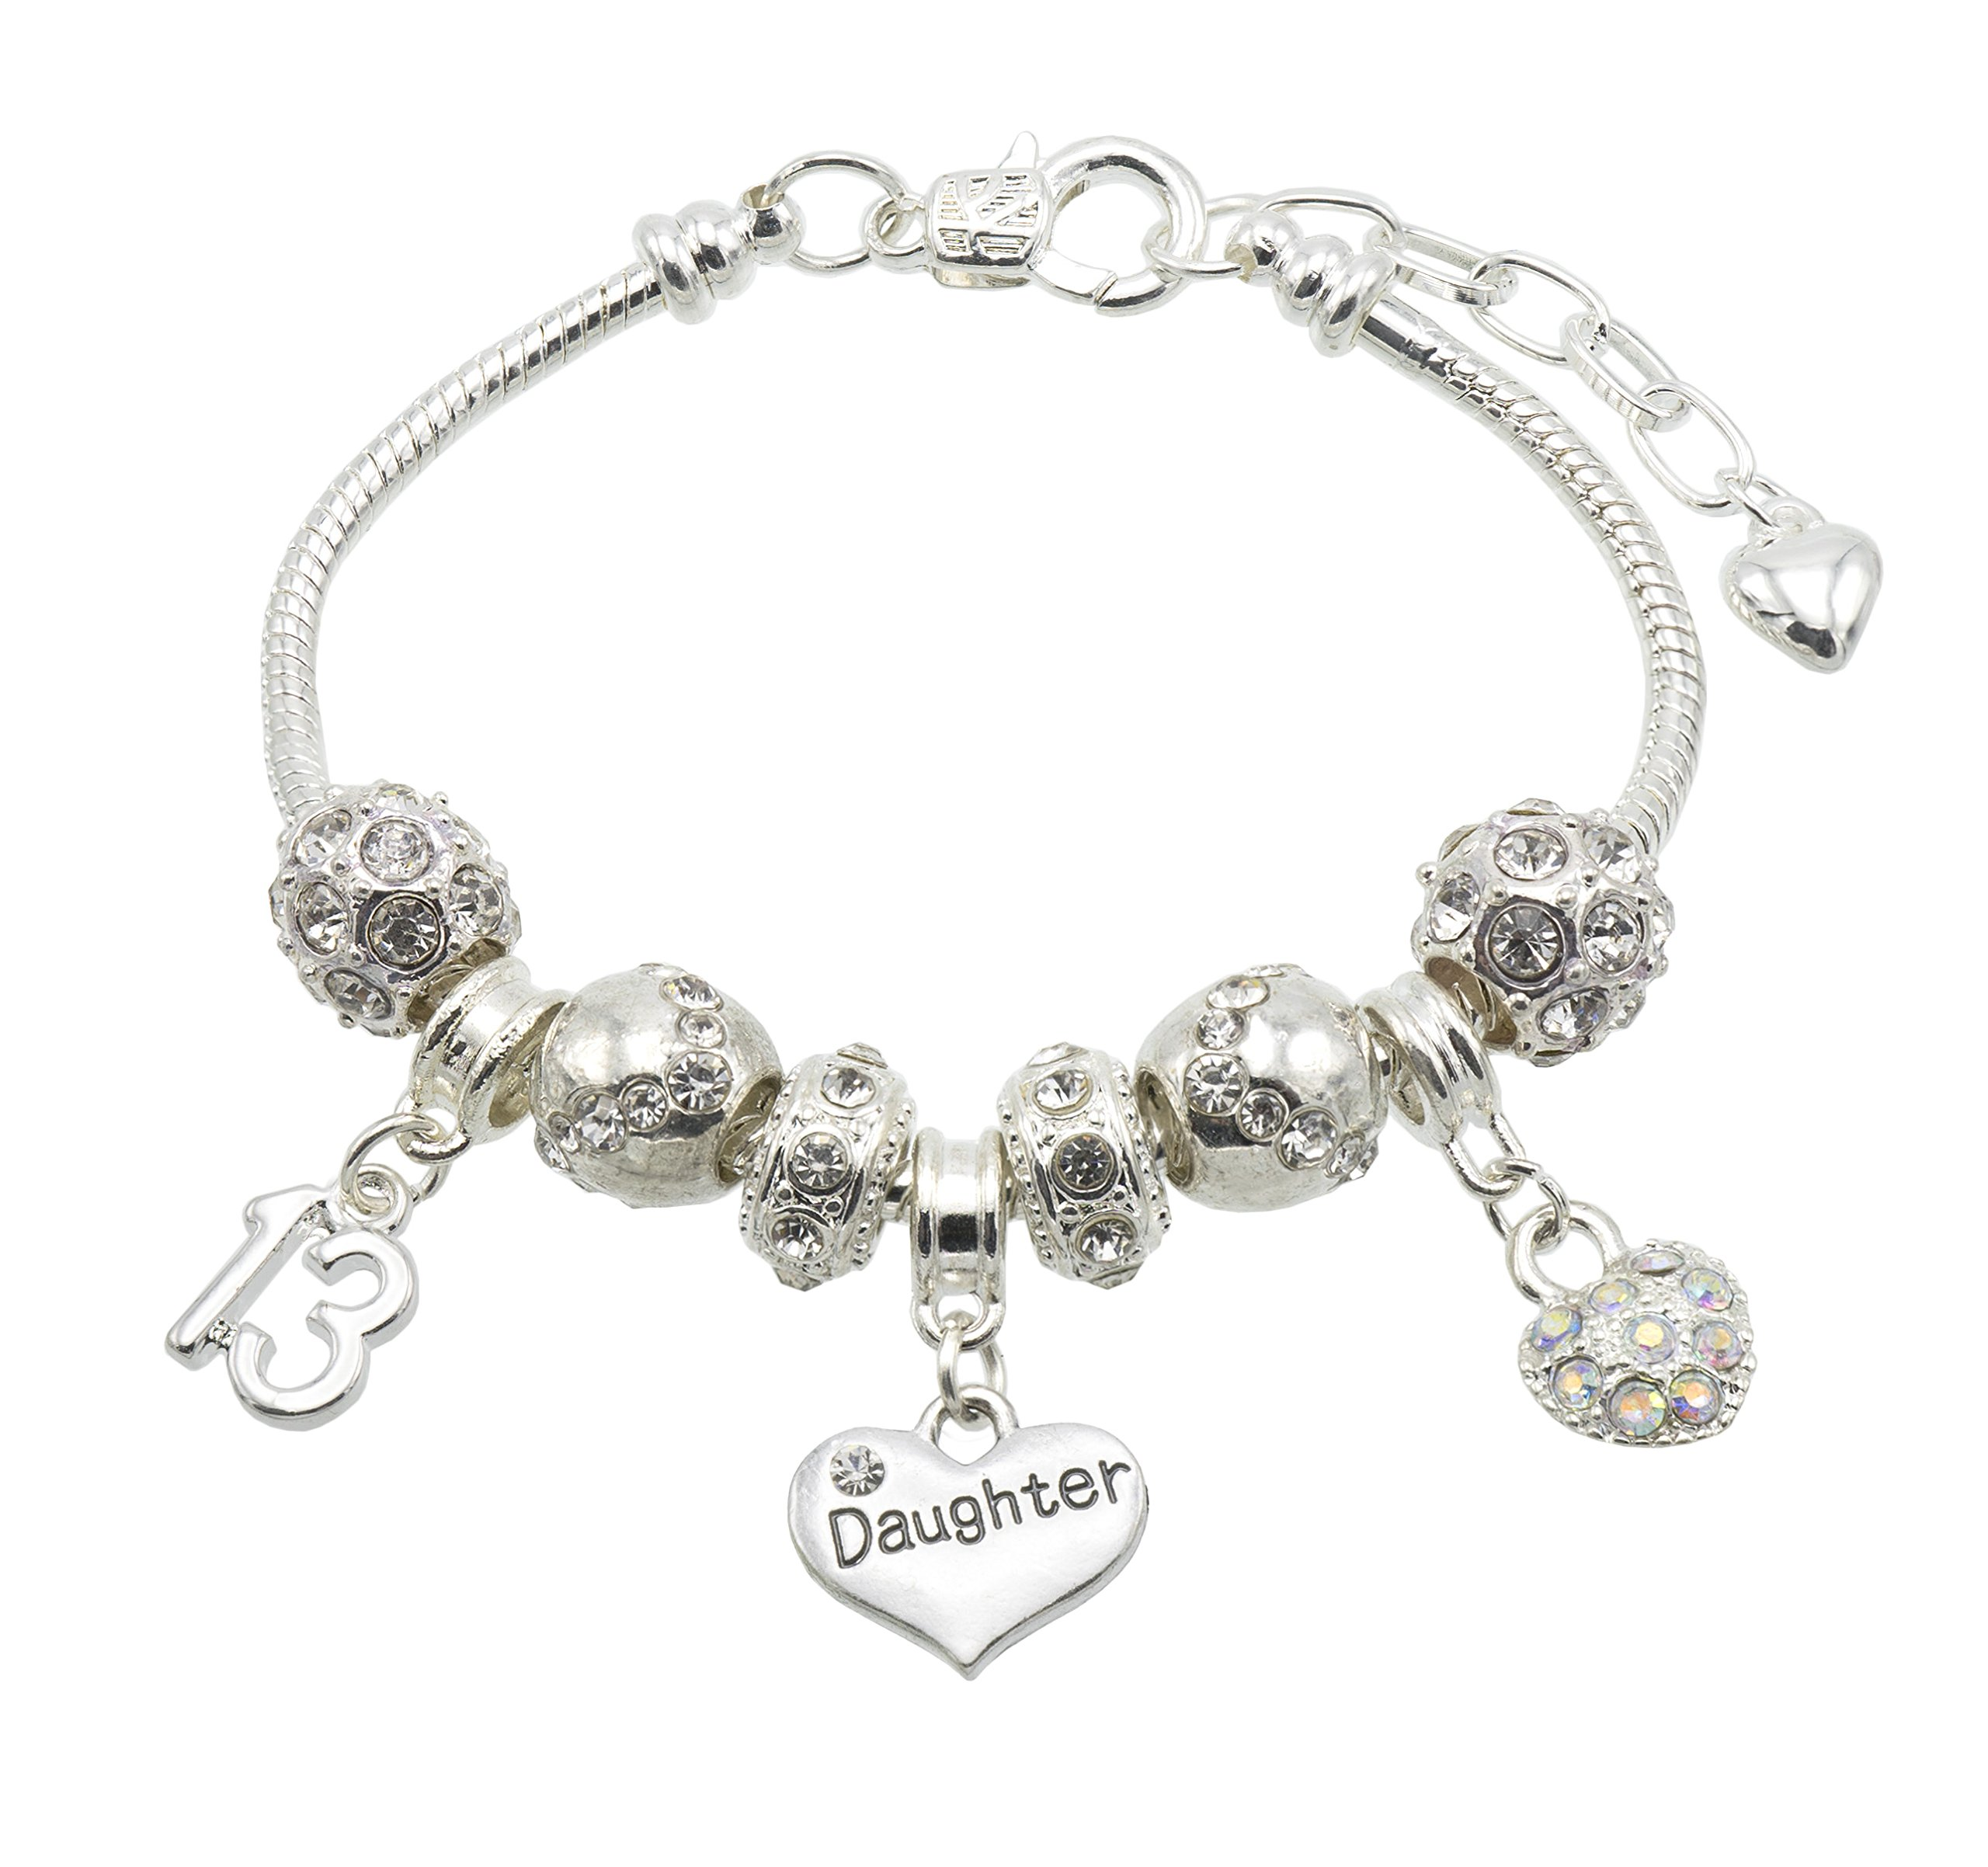 Jewellery Hut Daughter Birthday Charm Bracelet with Gift Box – Ages Available 13, 15, 16, 18, 20, 21, 25, 30, 35, 40, 45 & 50